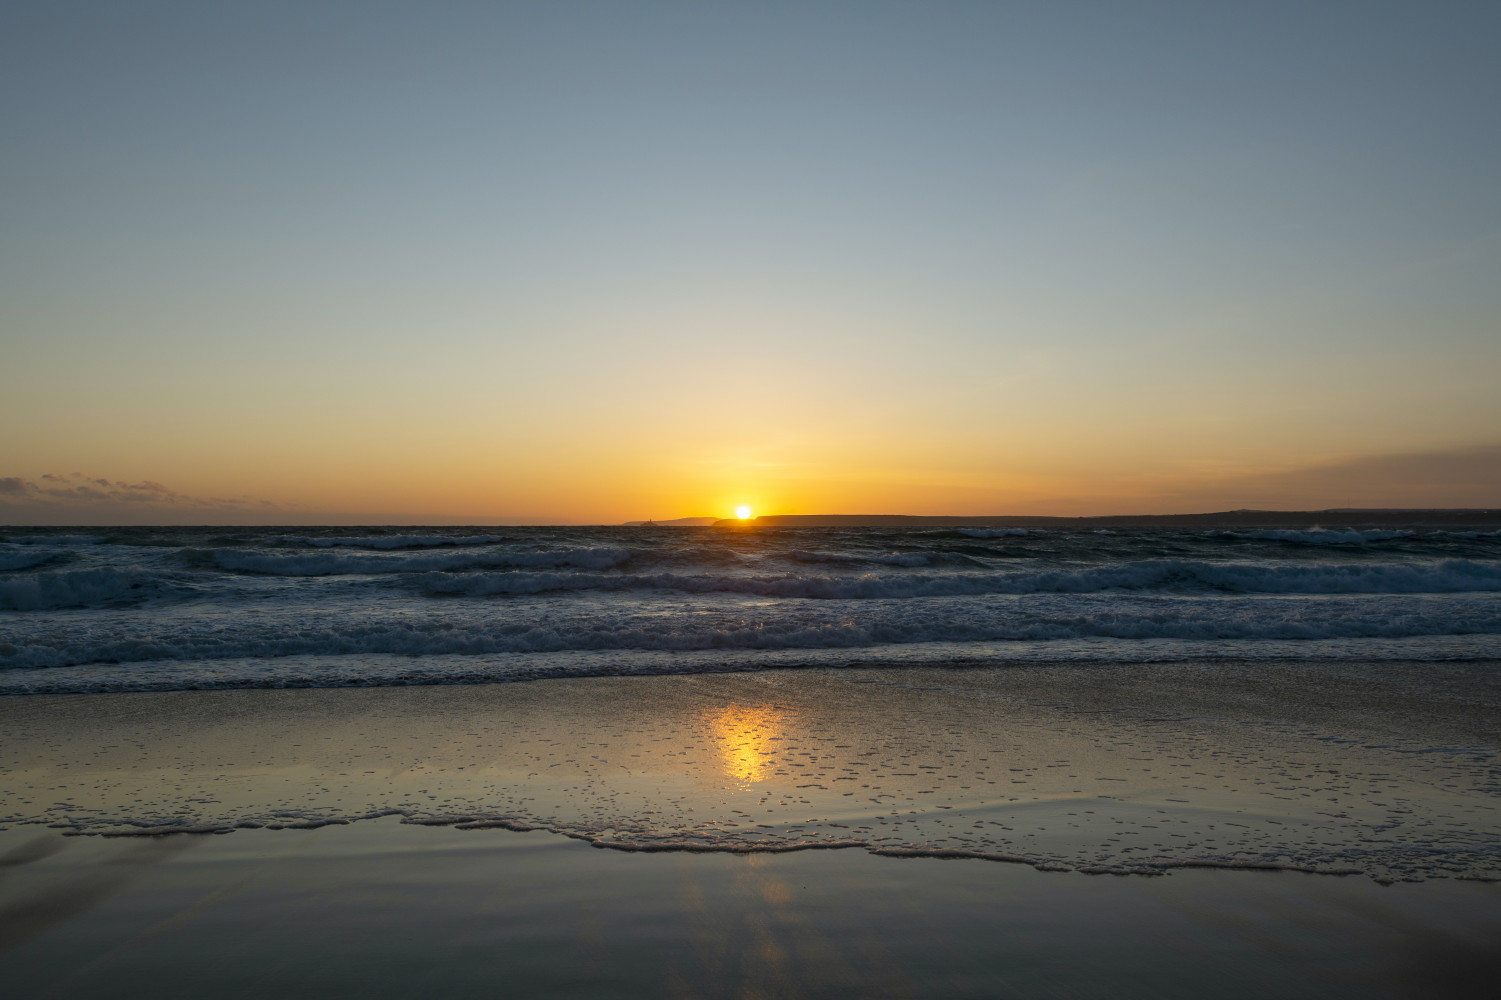 Kieran's first sunrise after 53 days in iso!